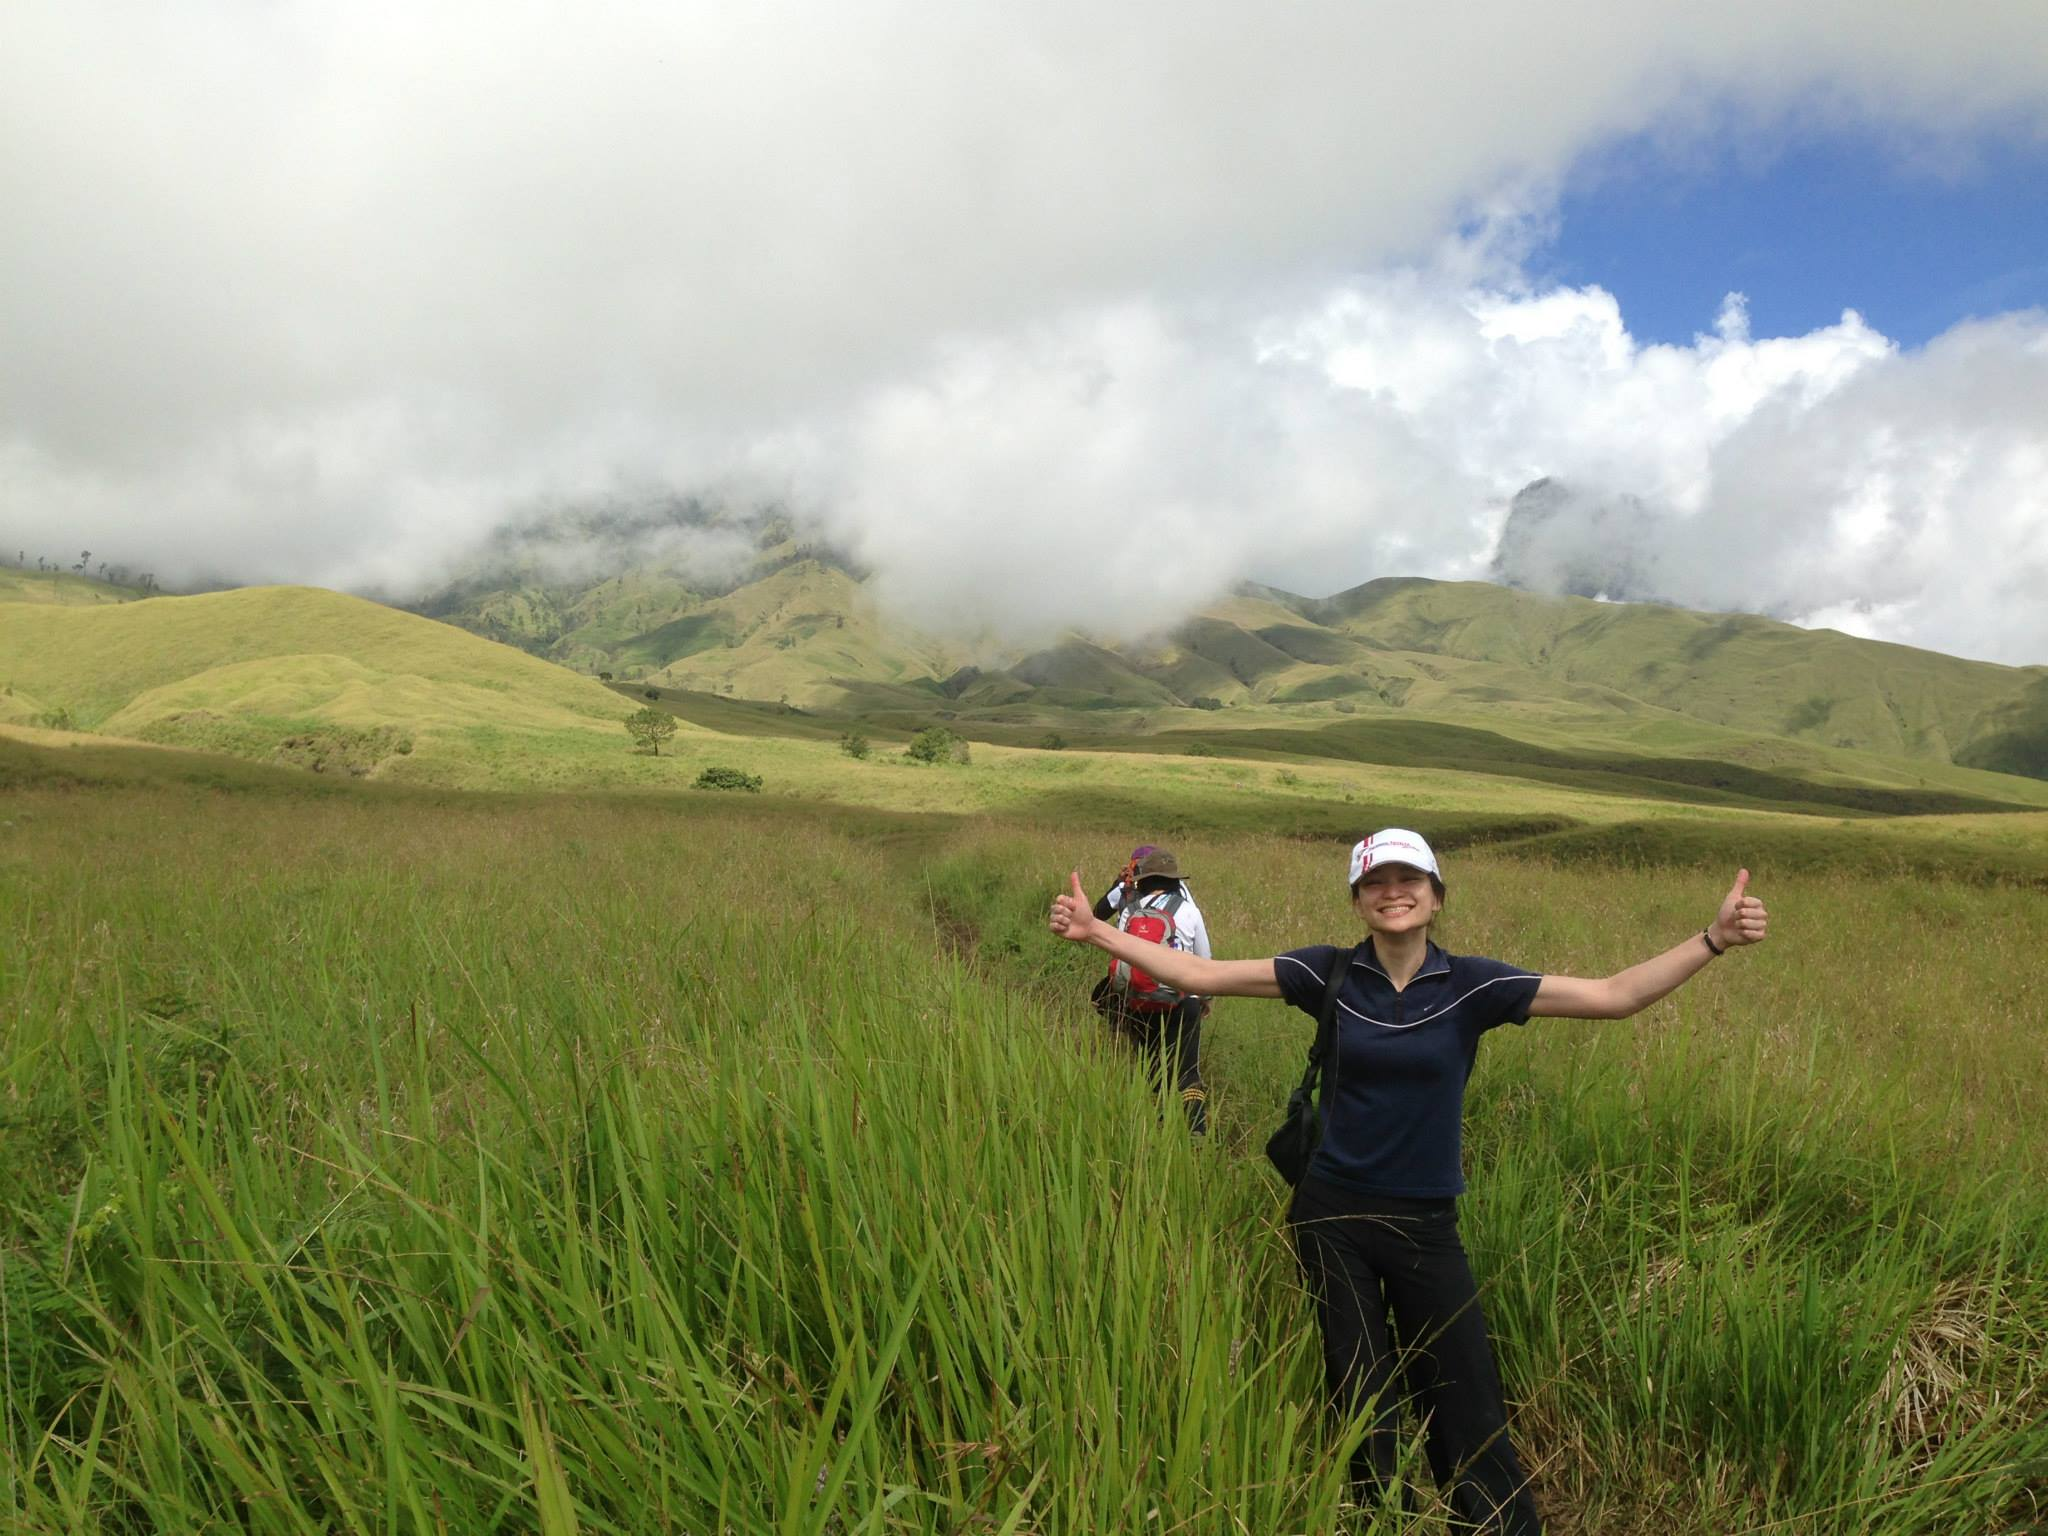 Climbing mount rinjani package lombok island indonesia about us -  Lombok Island Indonesia Visit More Hiking Package Mount Rinjani For Domestic Here Sitemap The Savanaah Grass Tall At Sembalun Lawang Altitude